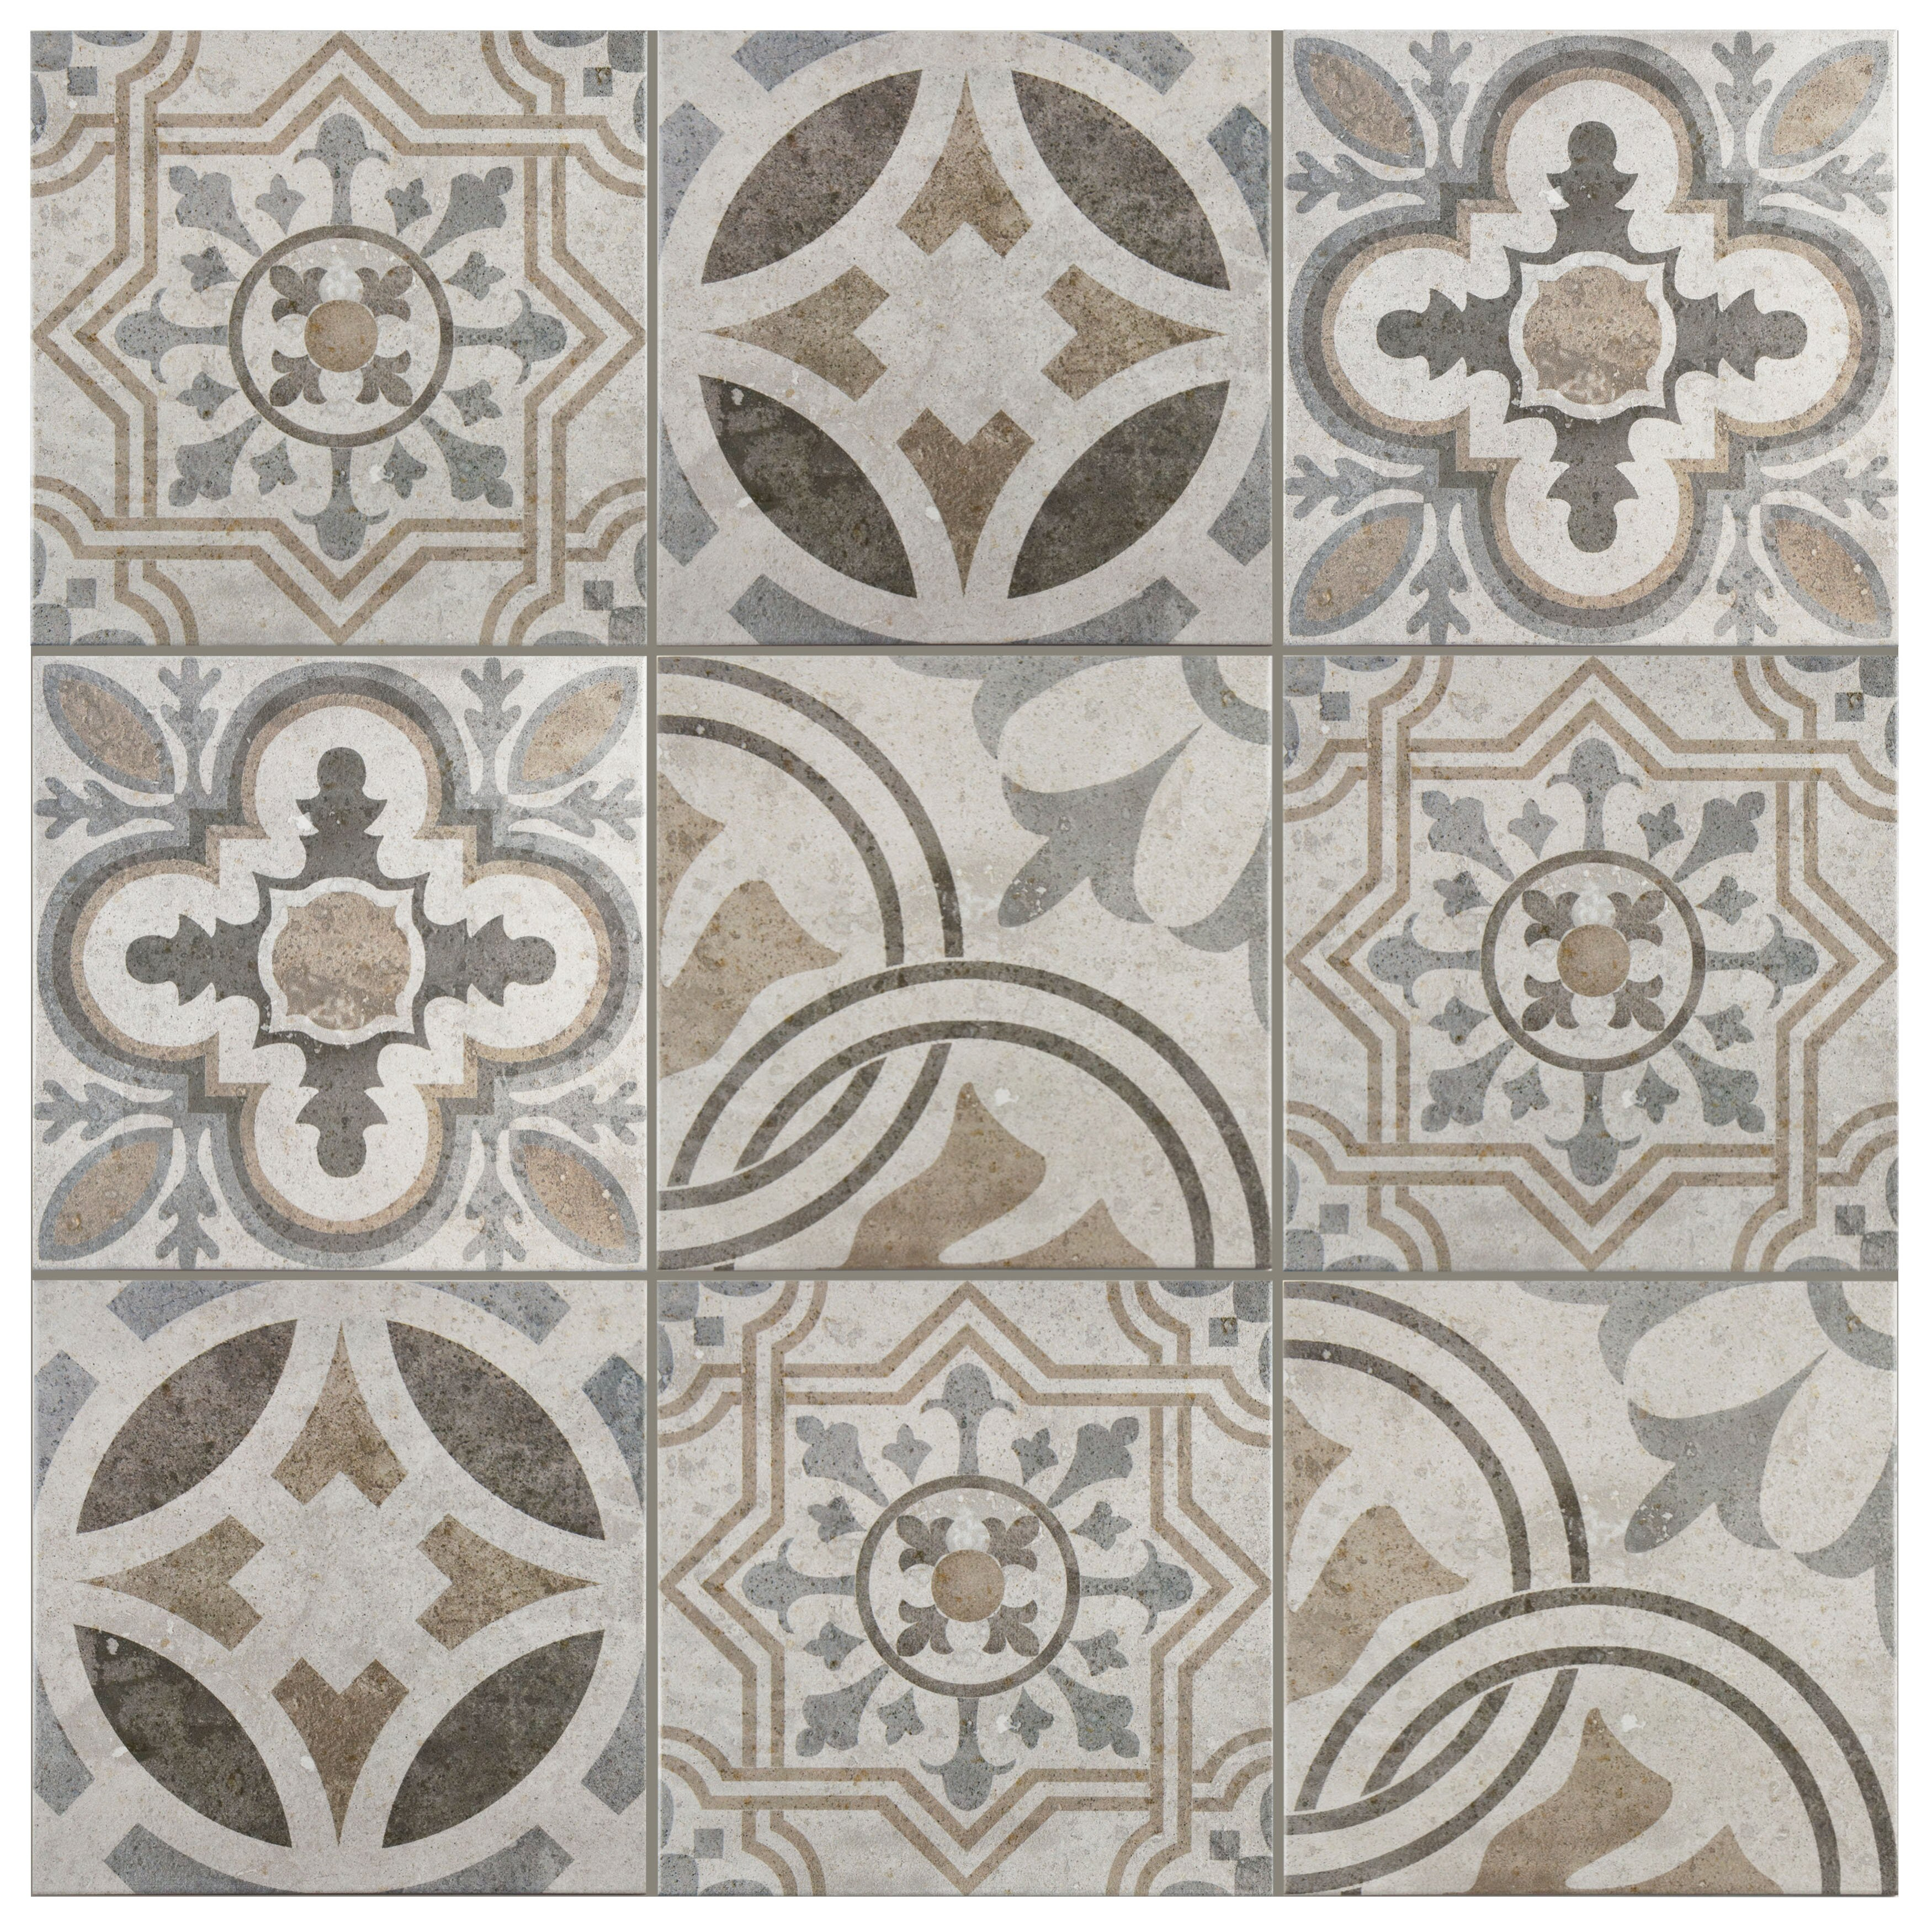 Elitetile ardisana x ceramic field tile in for Spanish clay tile